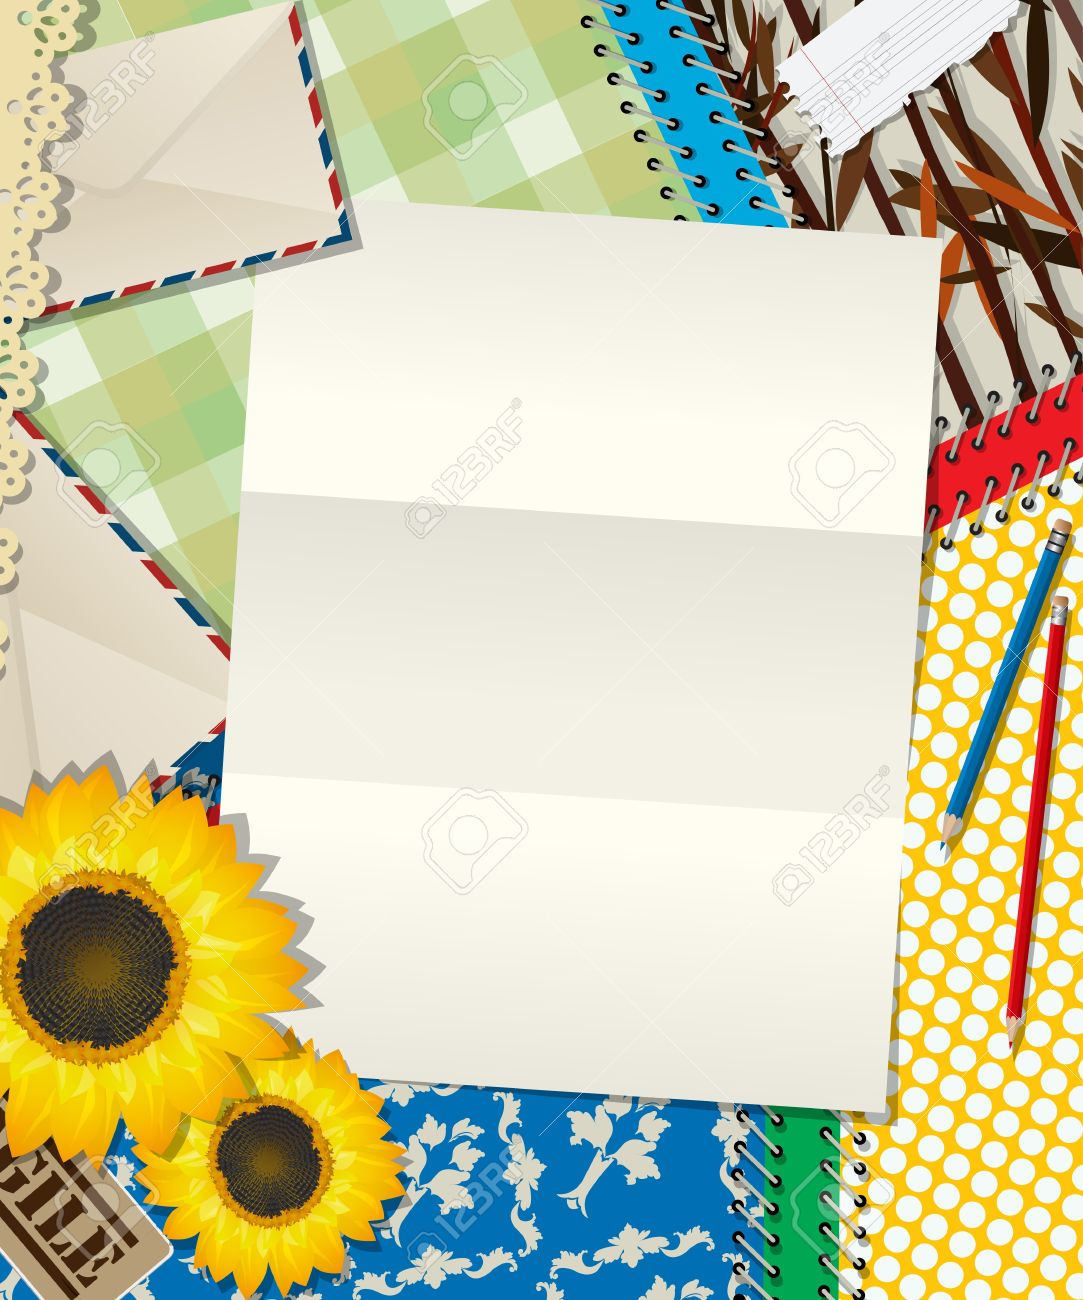 scrapbook design letter empty sheet background royalty free